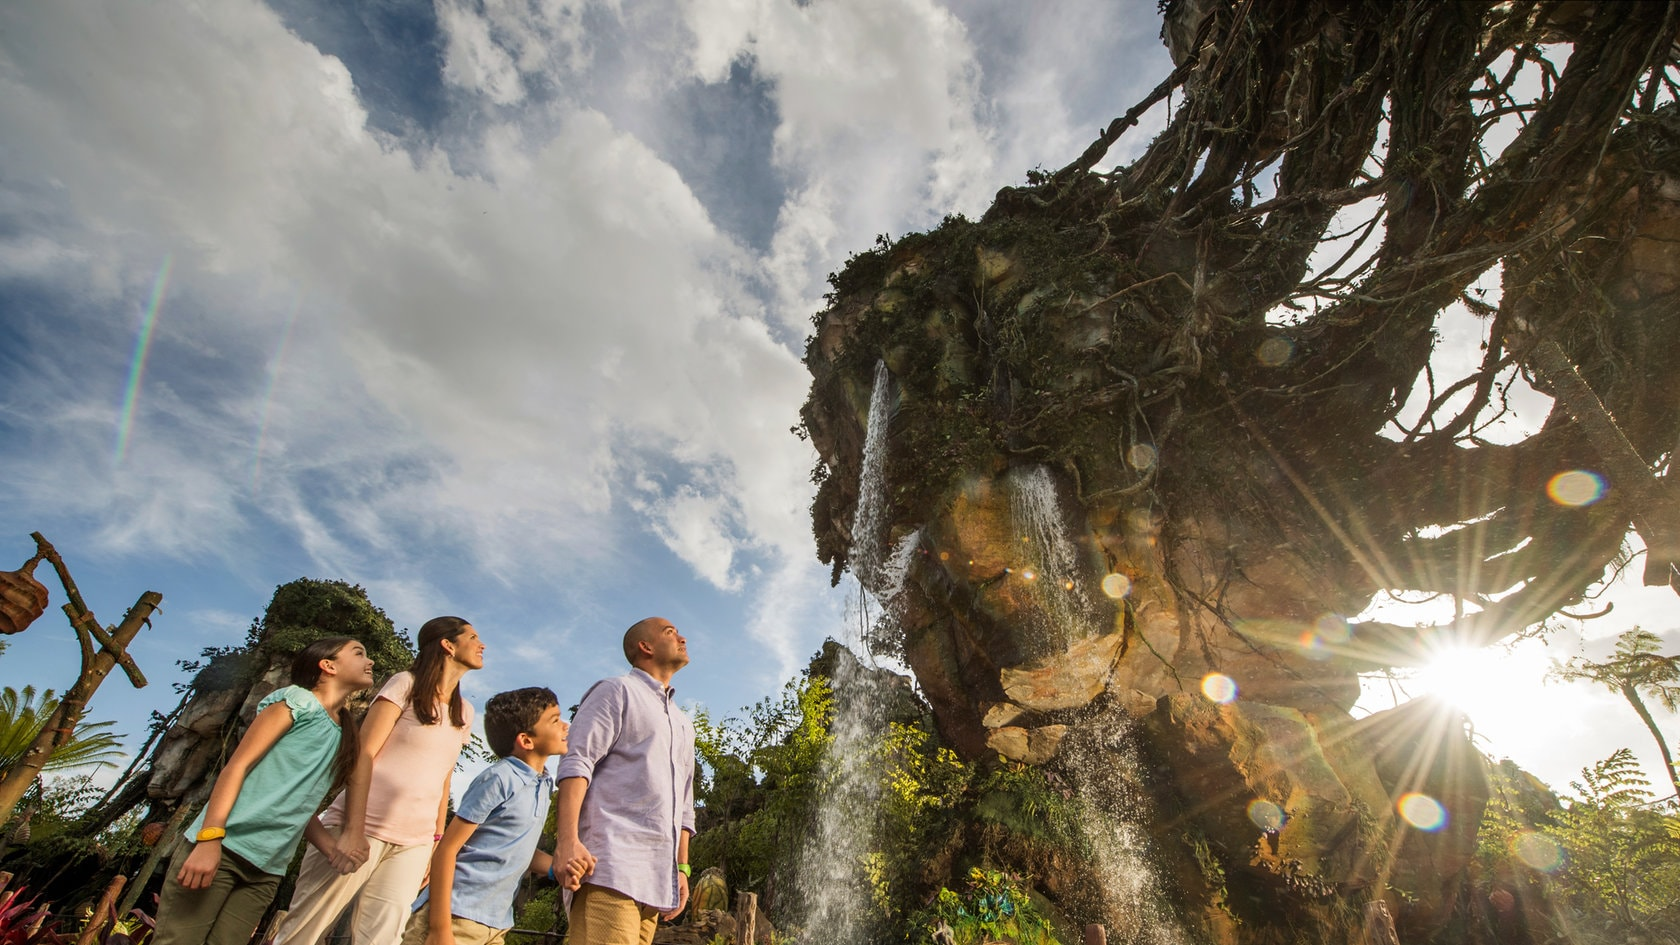 family vacations at disney parks resorts a family of 4 gazing in wonder at the majestic floating mountains of pandora the